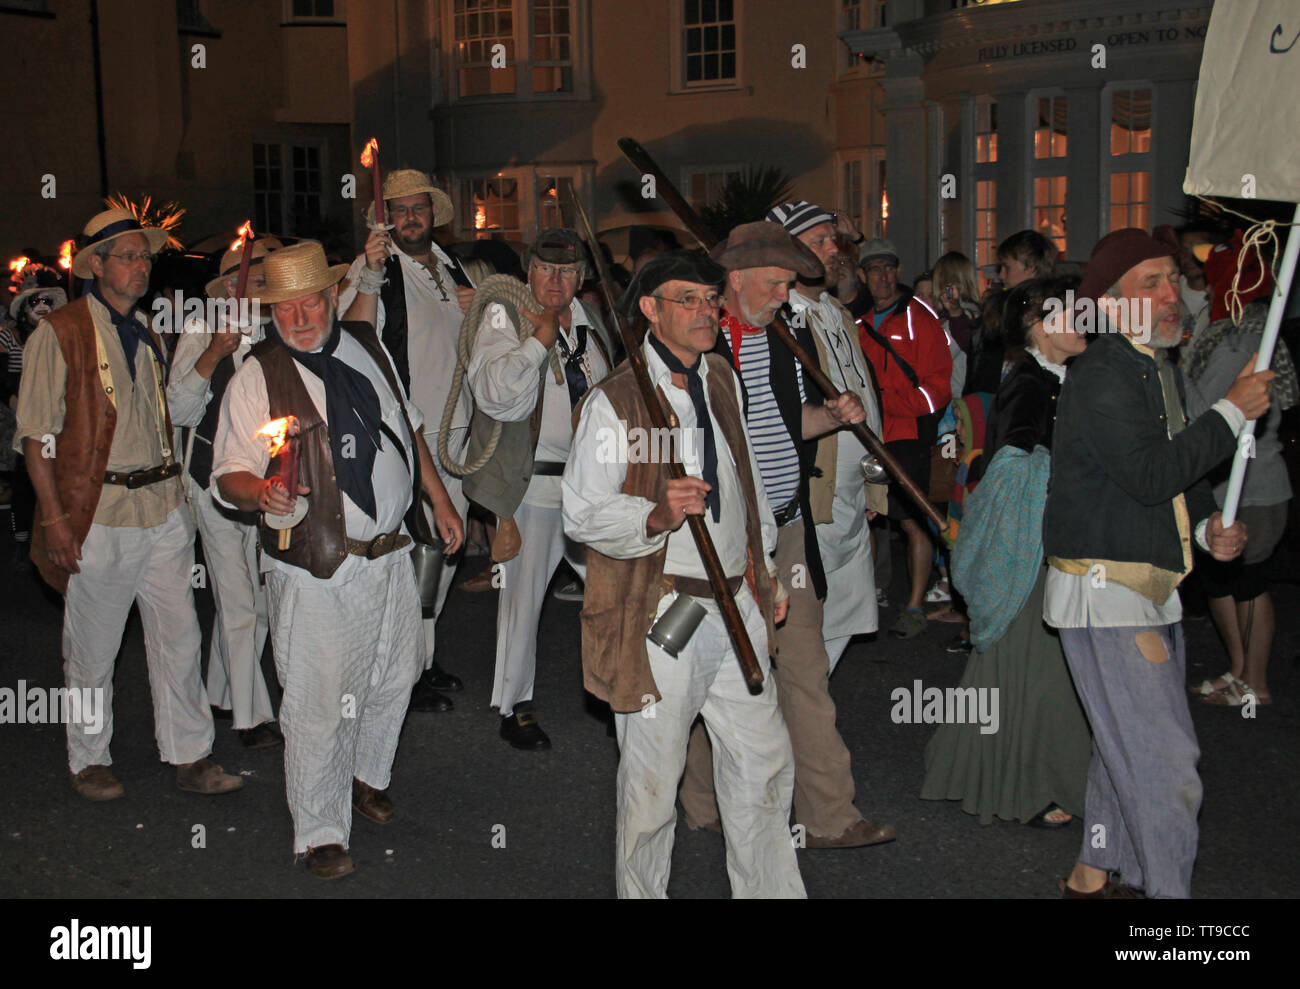 SIDMOUTH, DEVON, ENGLAND - AUGUST 10TH 2012: A group of men dressed as pirates take part in the night time closing procession of folk week. - Stock Image